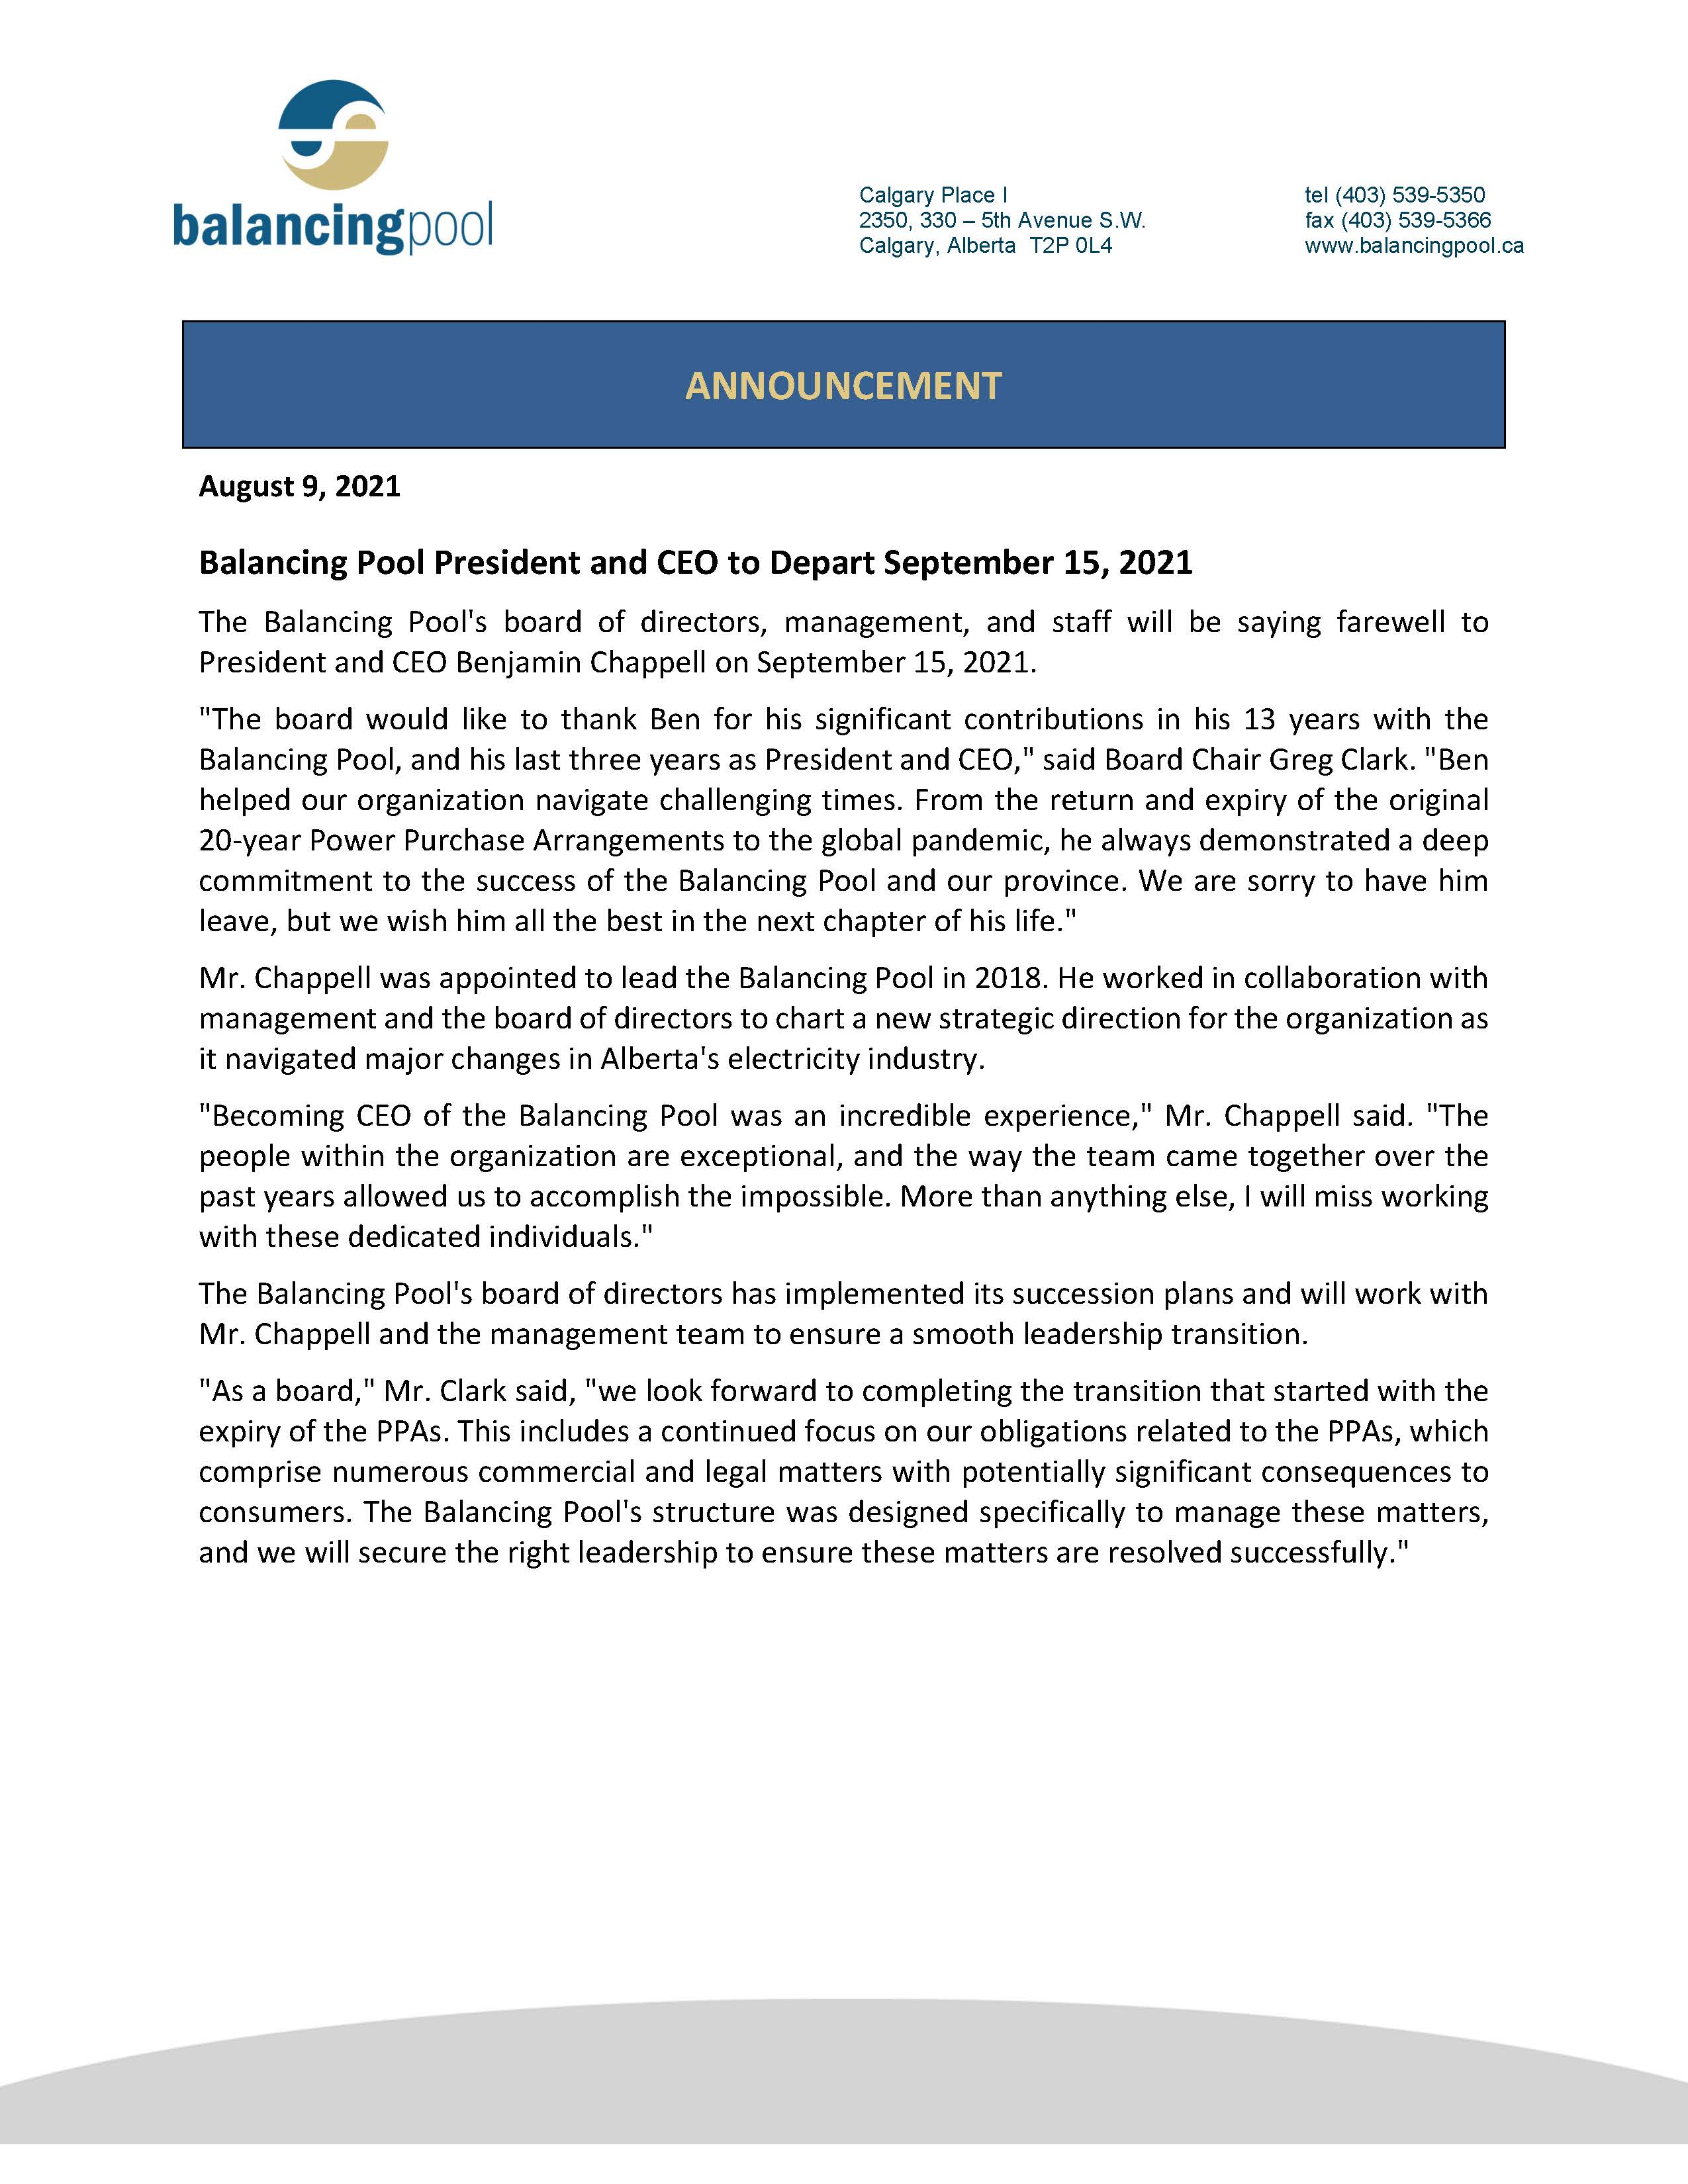 President and CEO to Depart September 15 2021